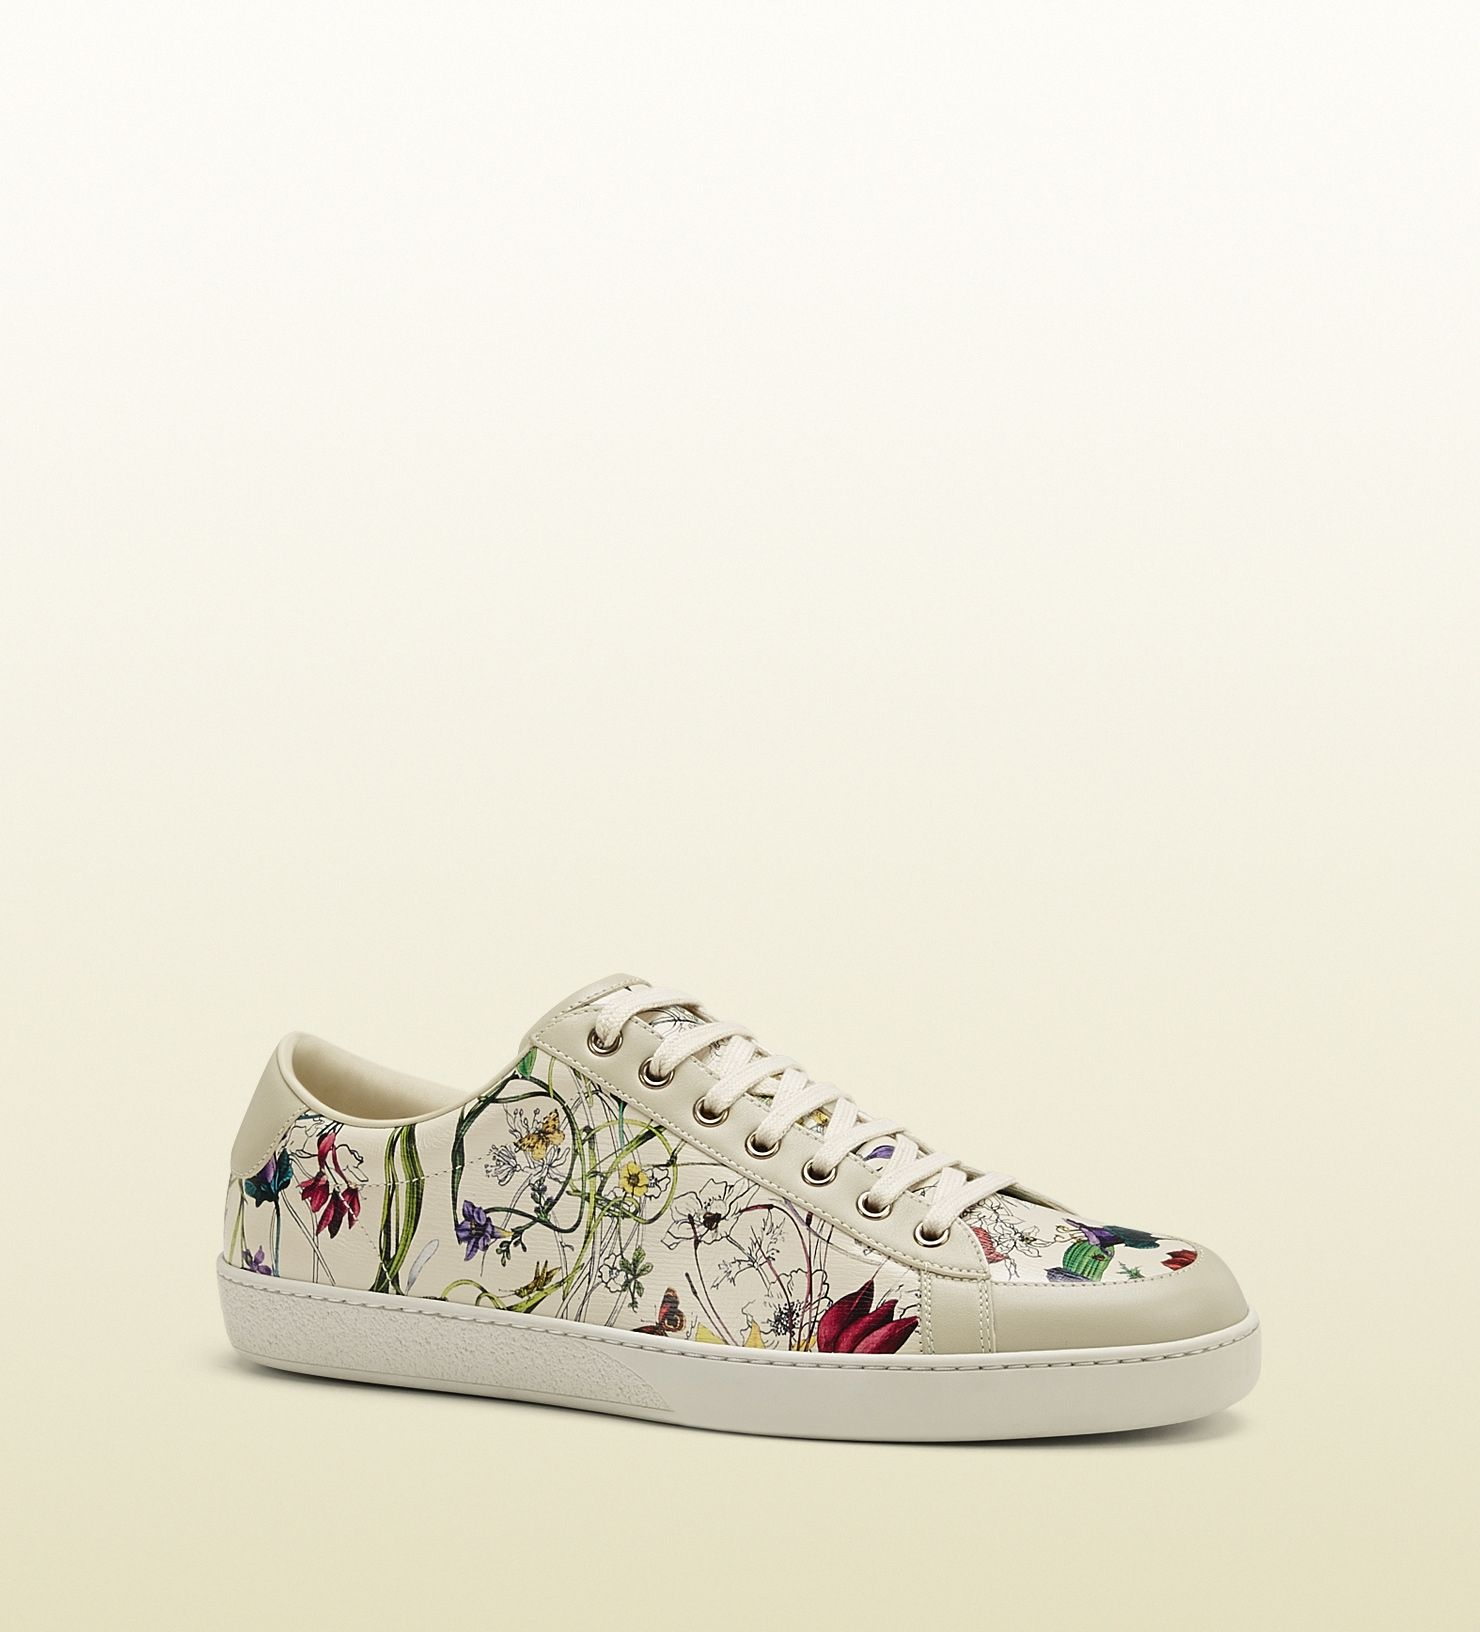 gucci rubber shoes price